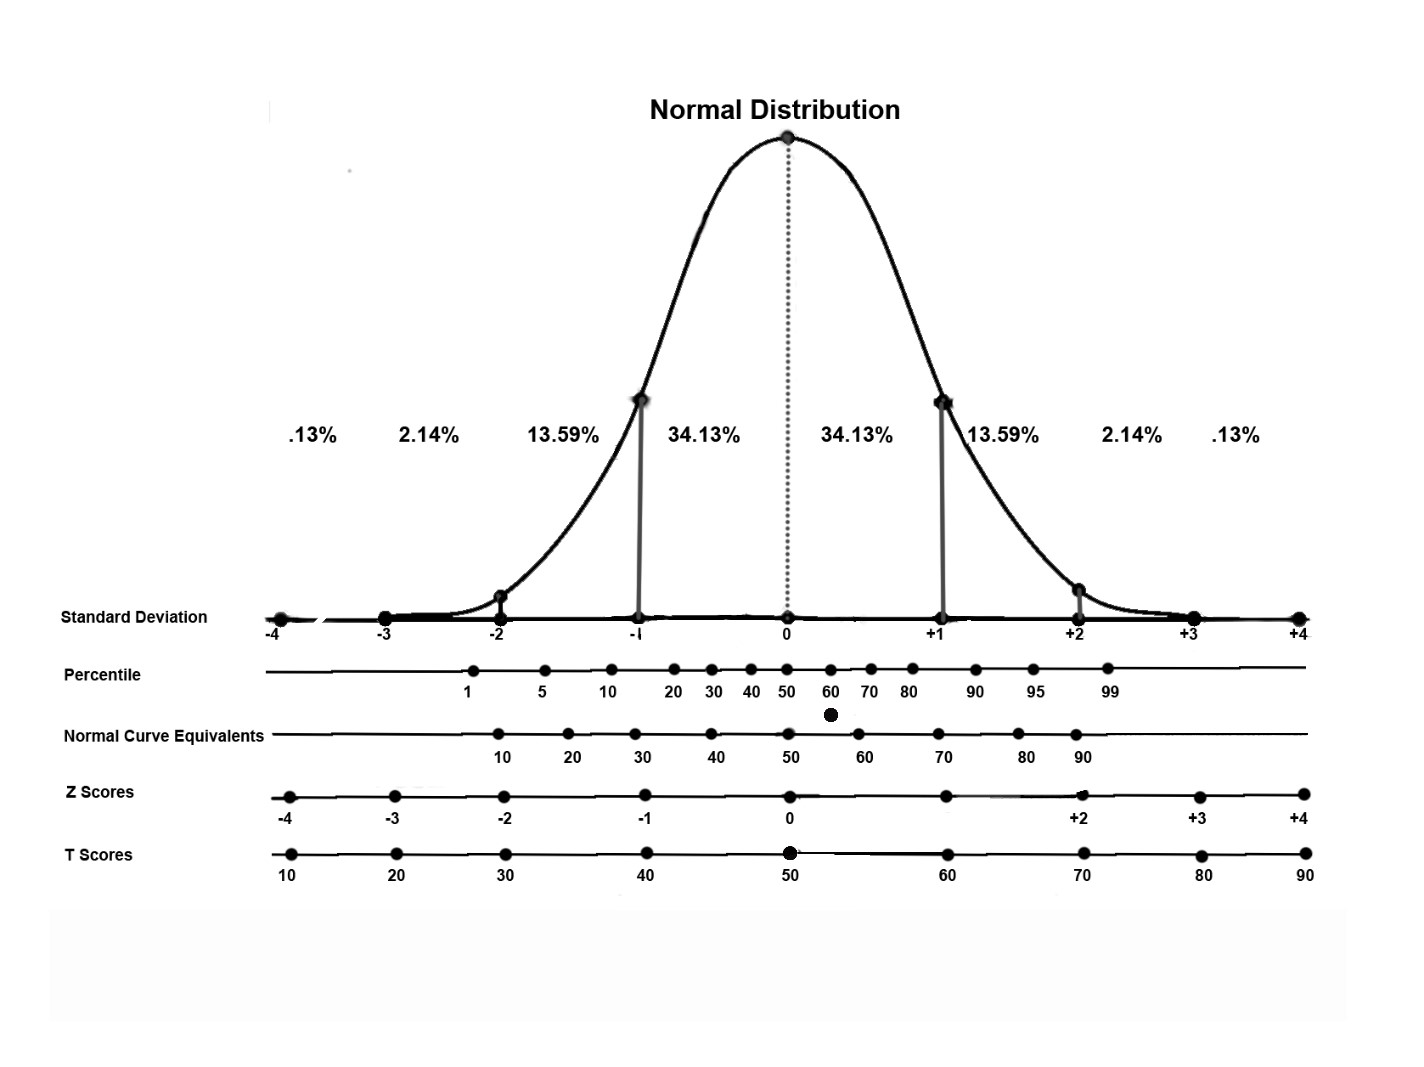 What Is The Difference Between Percentile And T Score